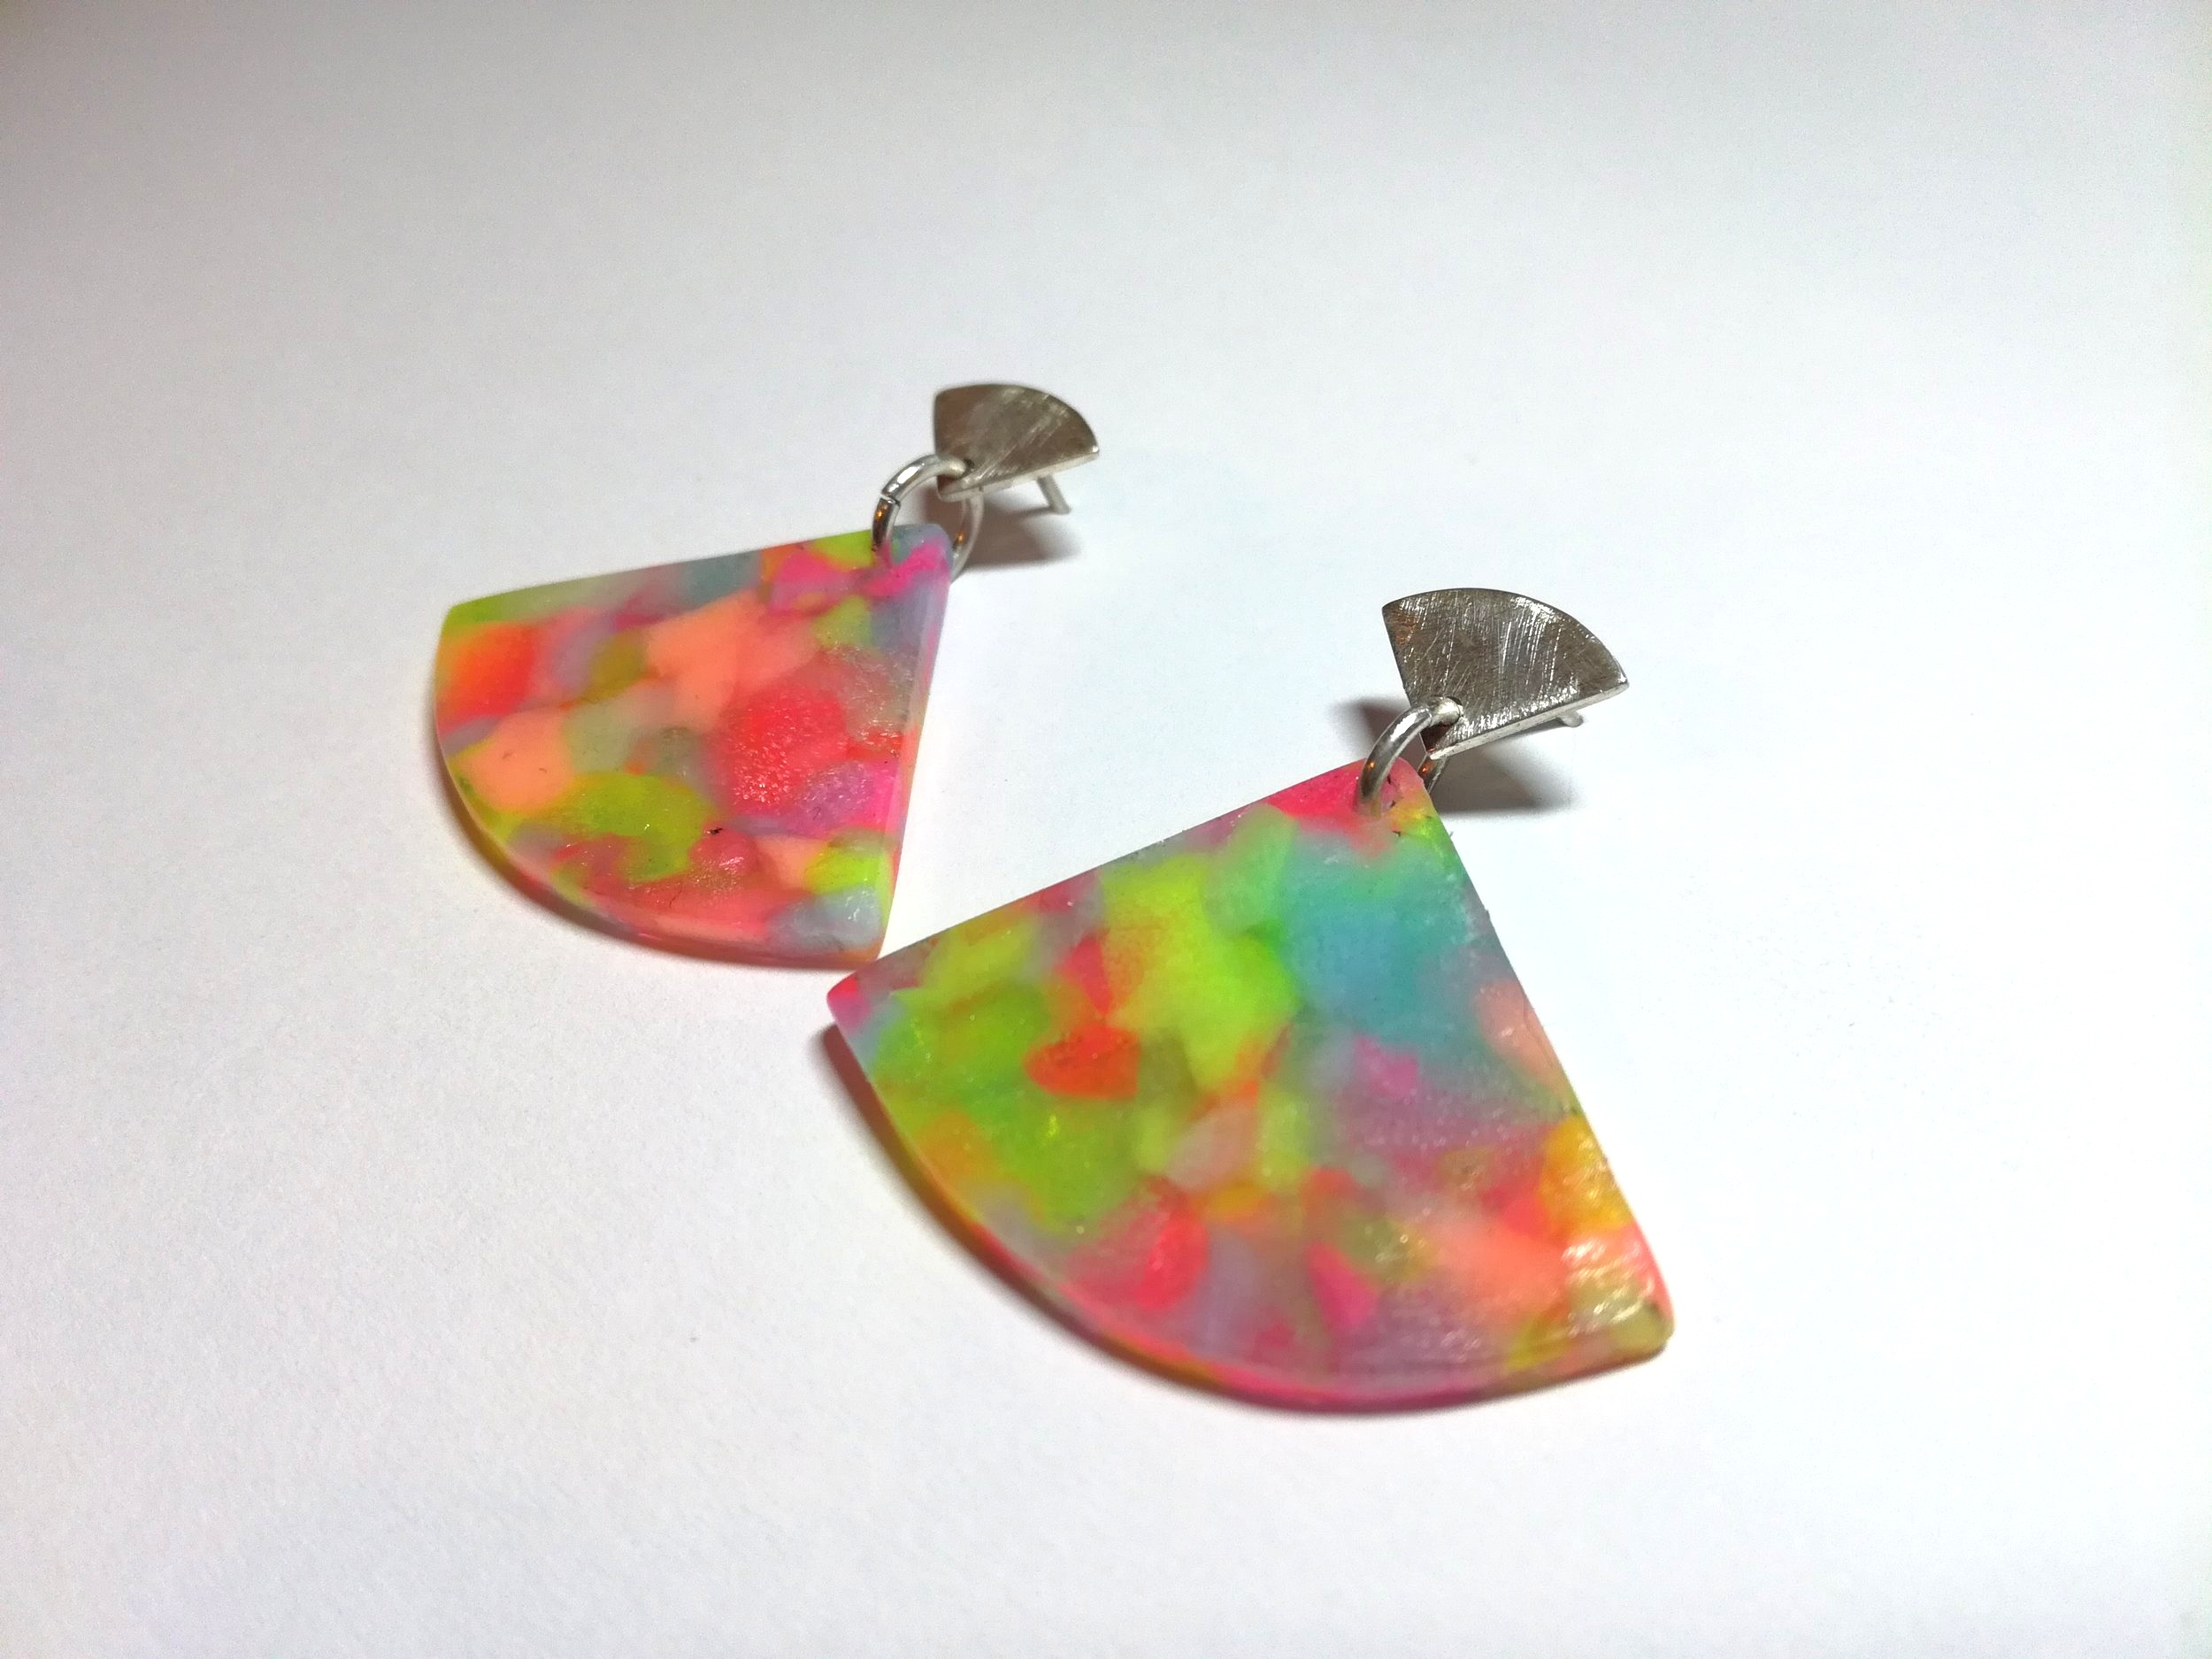 Short Fan style Ear Candy in 'Tutti Fruitti' colours